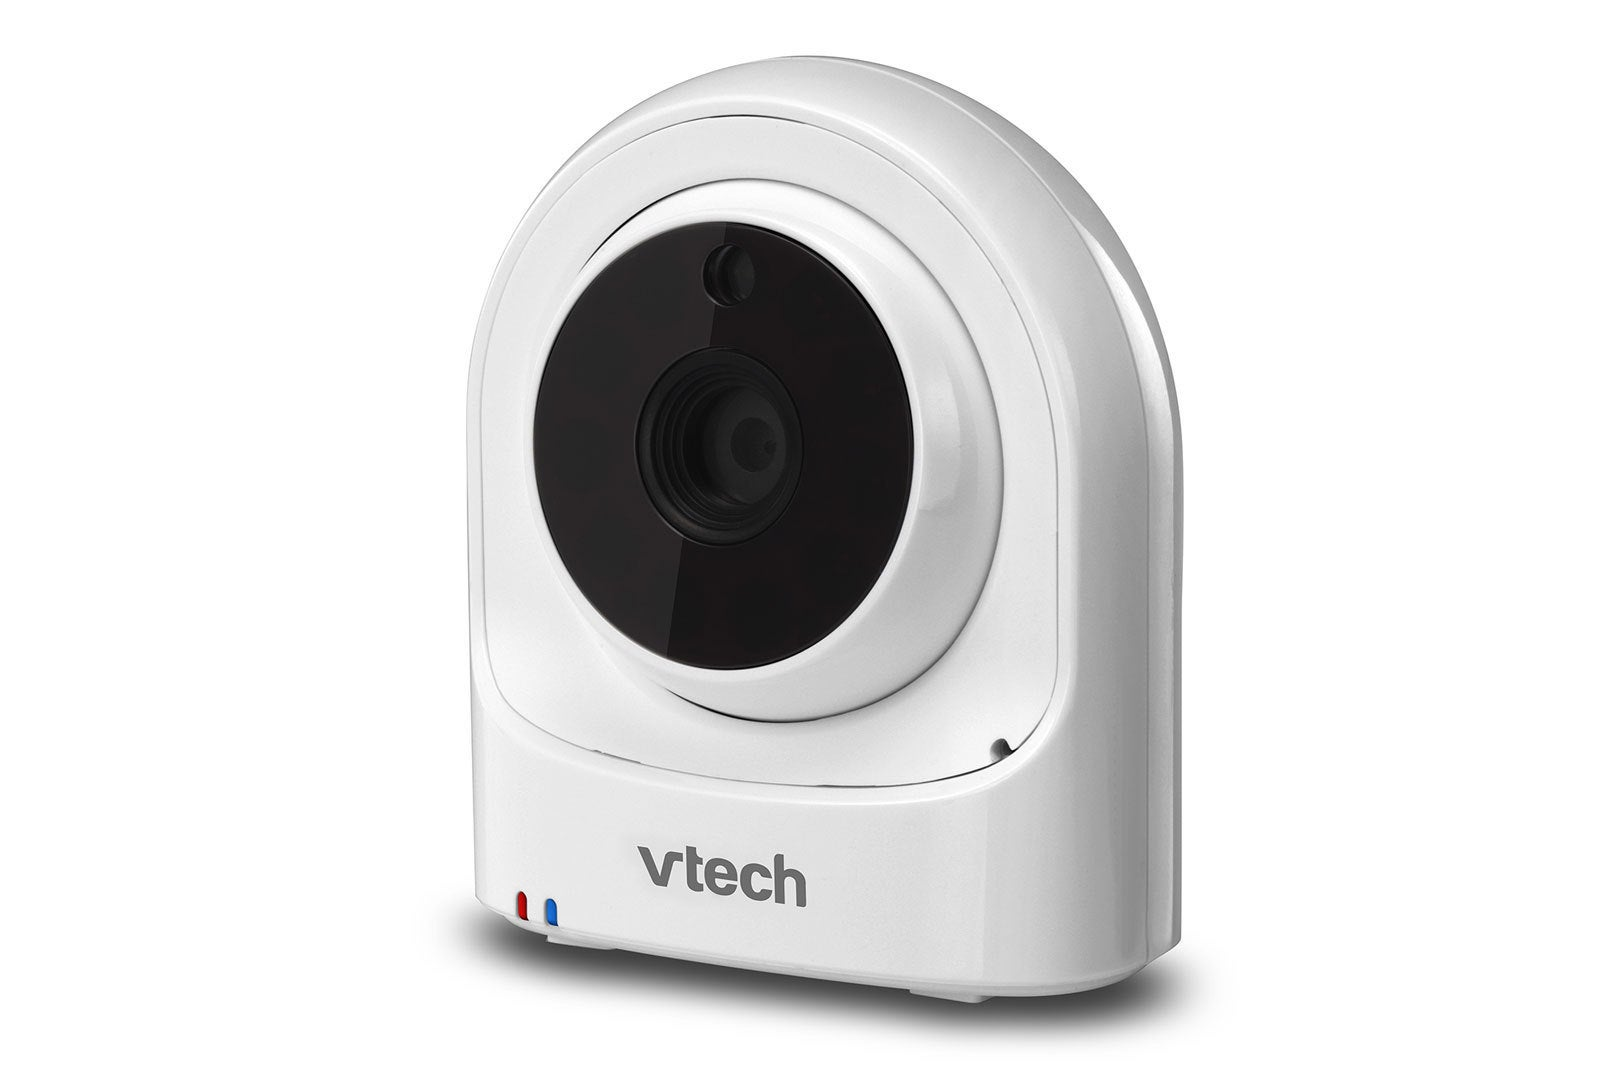 vtech vm981 safe sound expandable hd video baby monitor review not quite ready for the. Black Bedroom Furniture Sets. Home Design Ideas